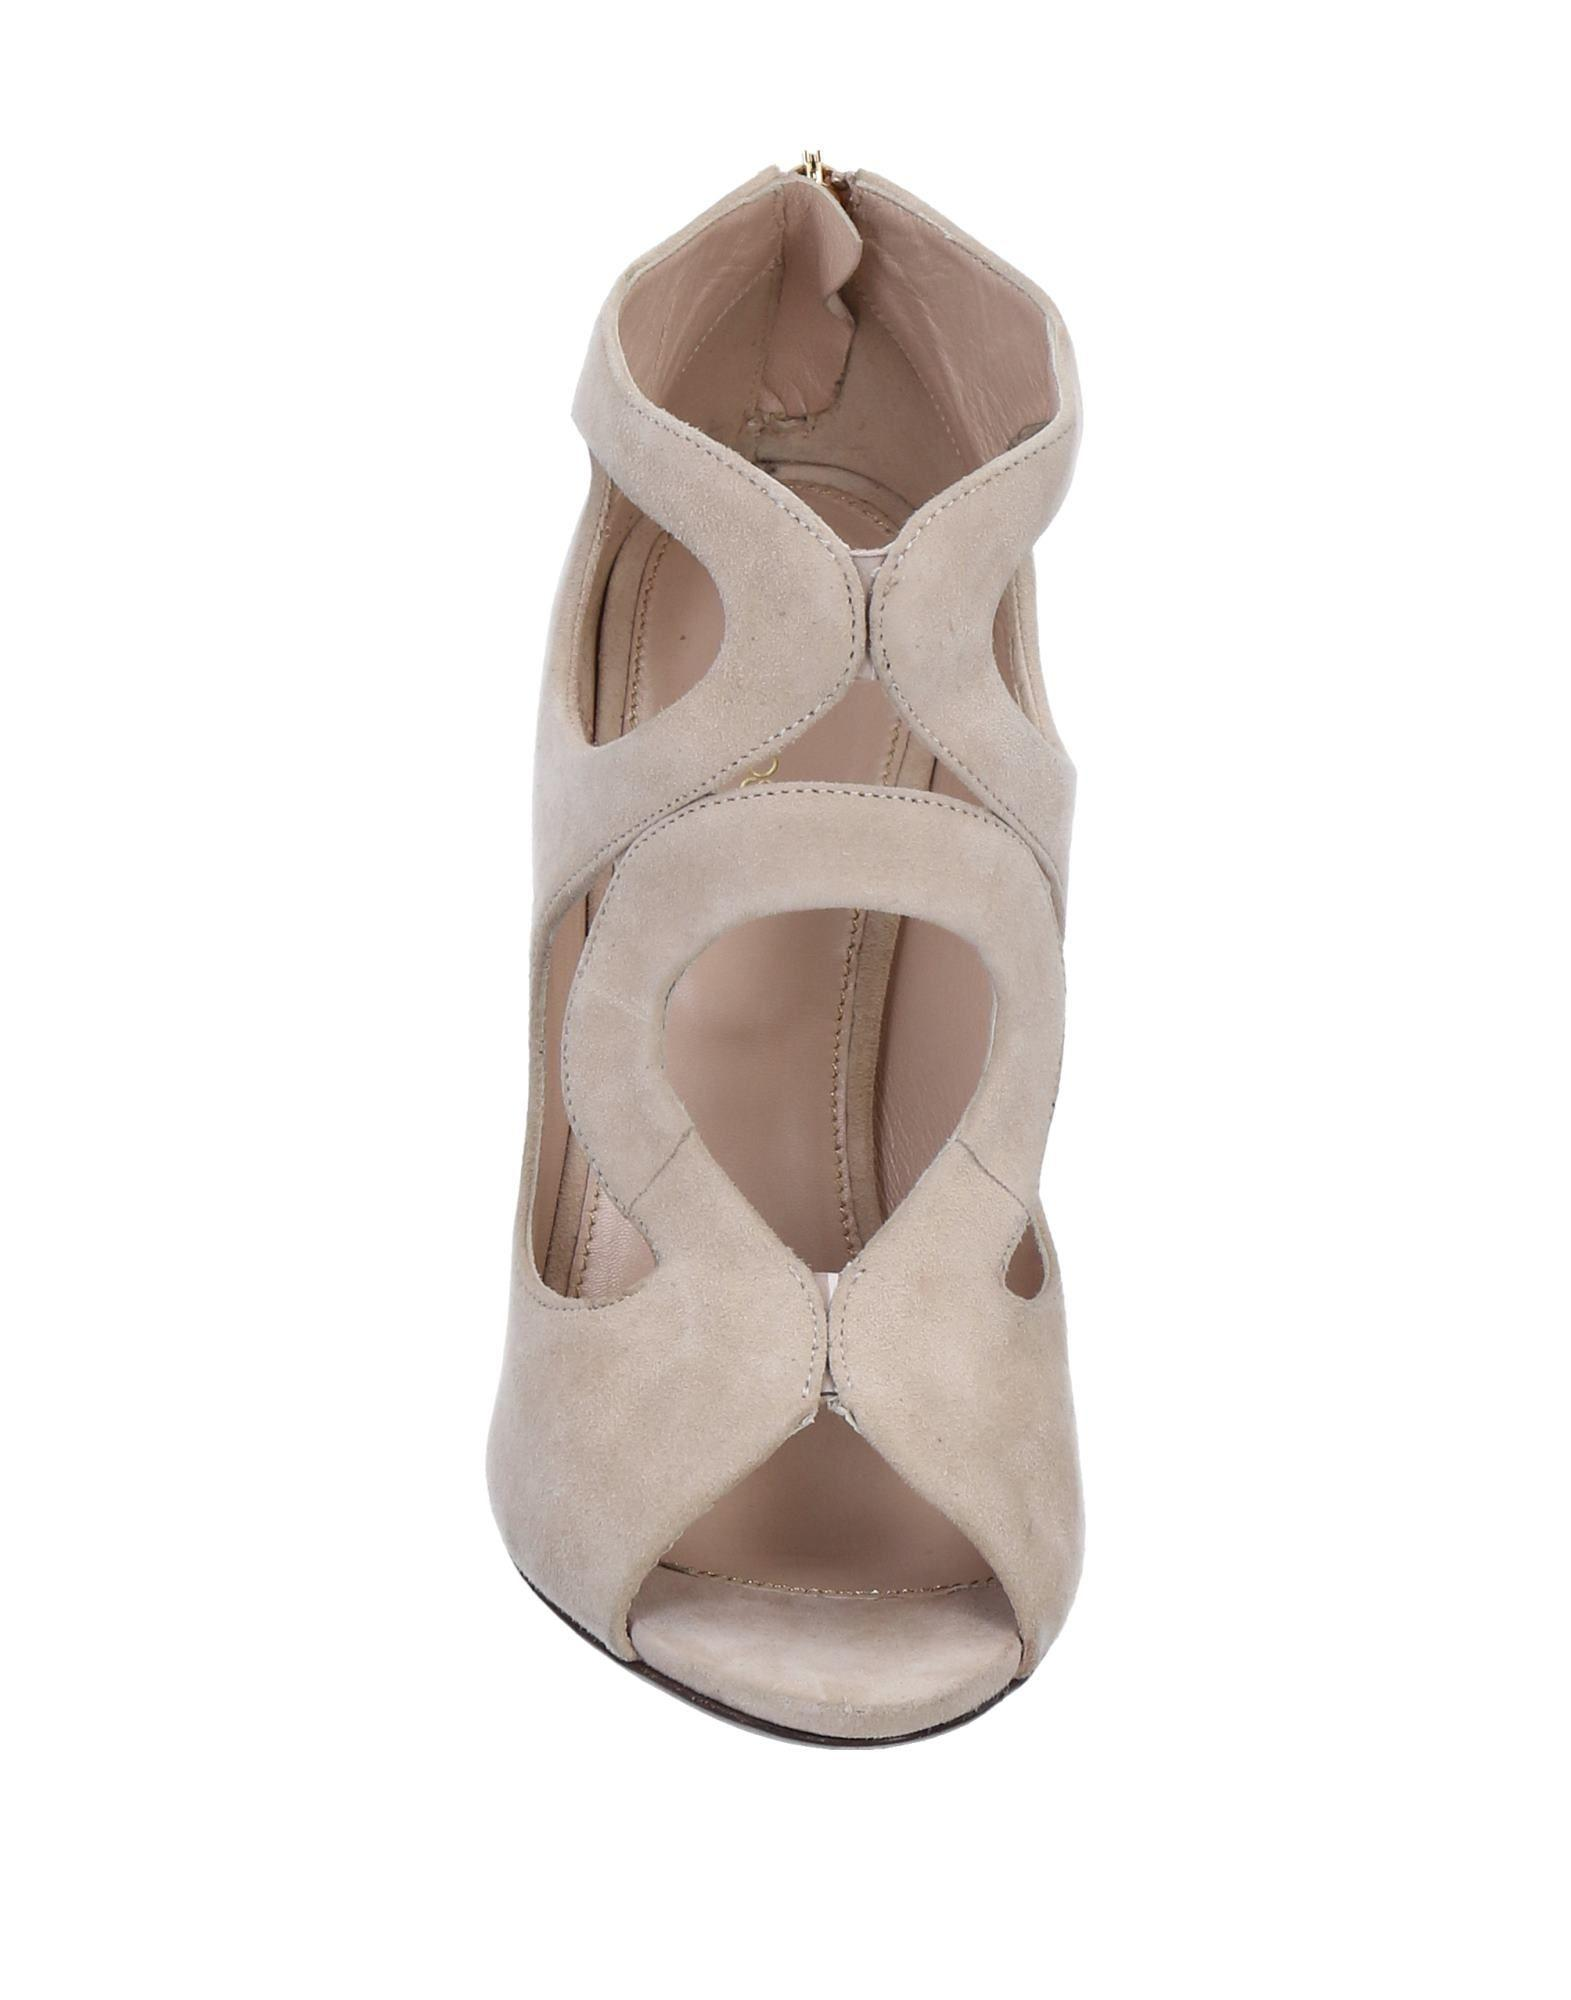 Sergio Rossi Leather Ankle Boots in Beige (Natural)